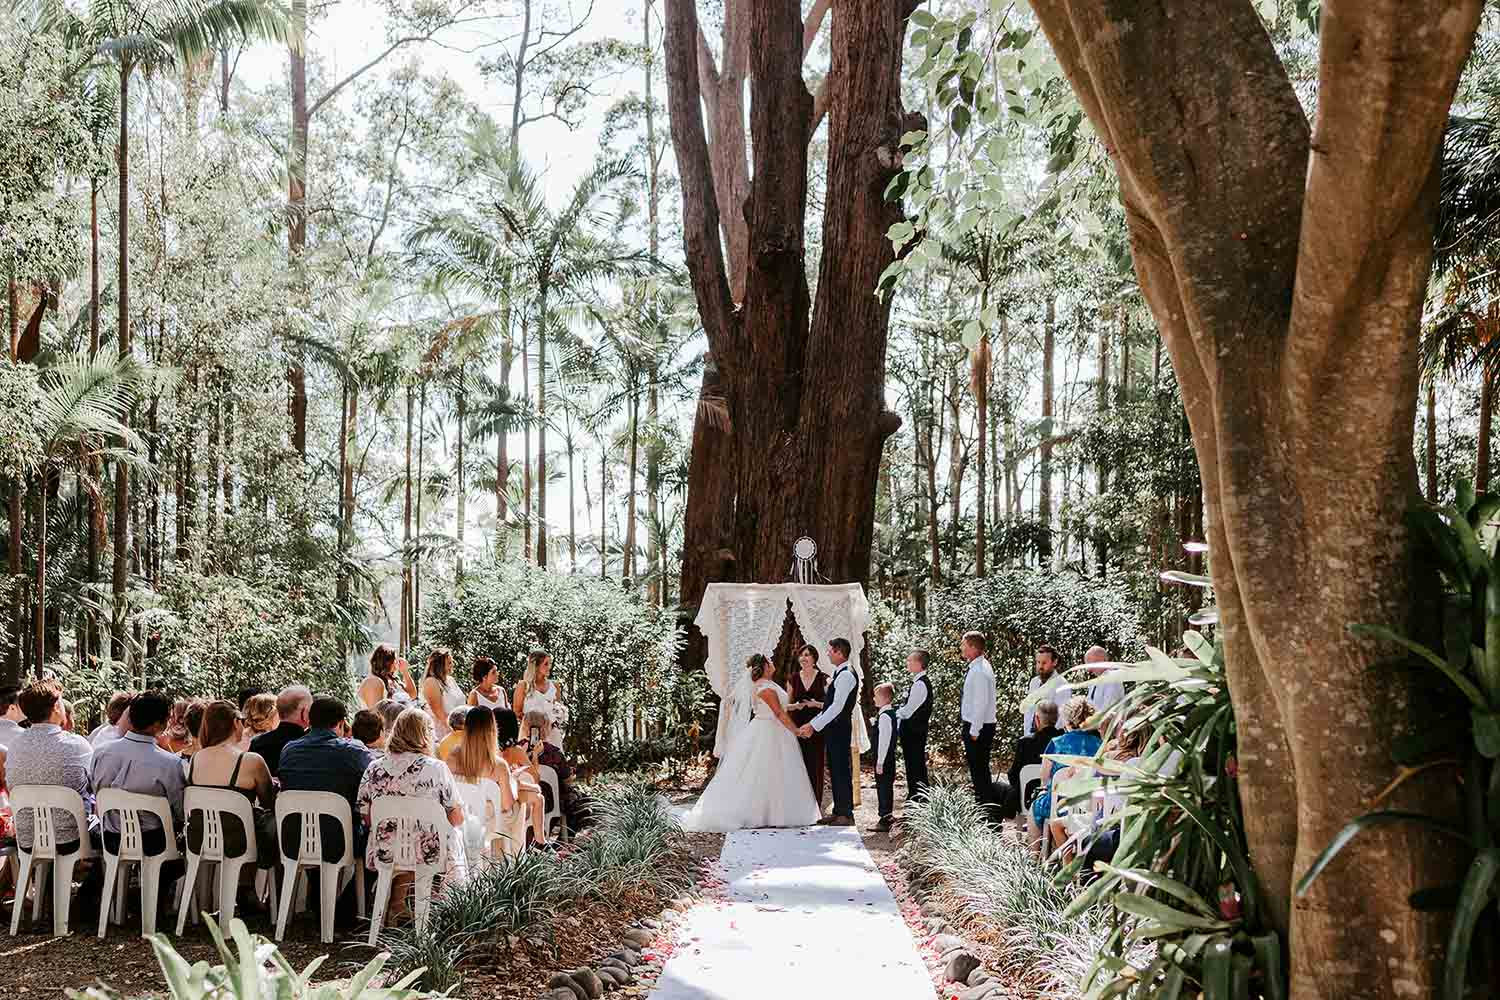 Ceremony in a rainforest bride and groom hold hands face each other celebrant is smiling - Bonville golf resort weddings - Coffs harbour wedding photographer - Bellingen wedding photographer - Nambucca Valley wedding photographer